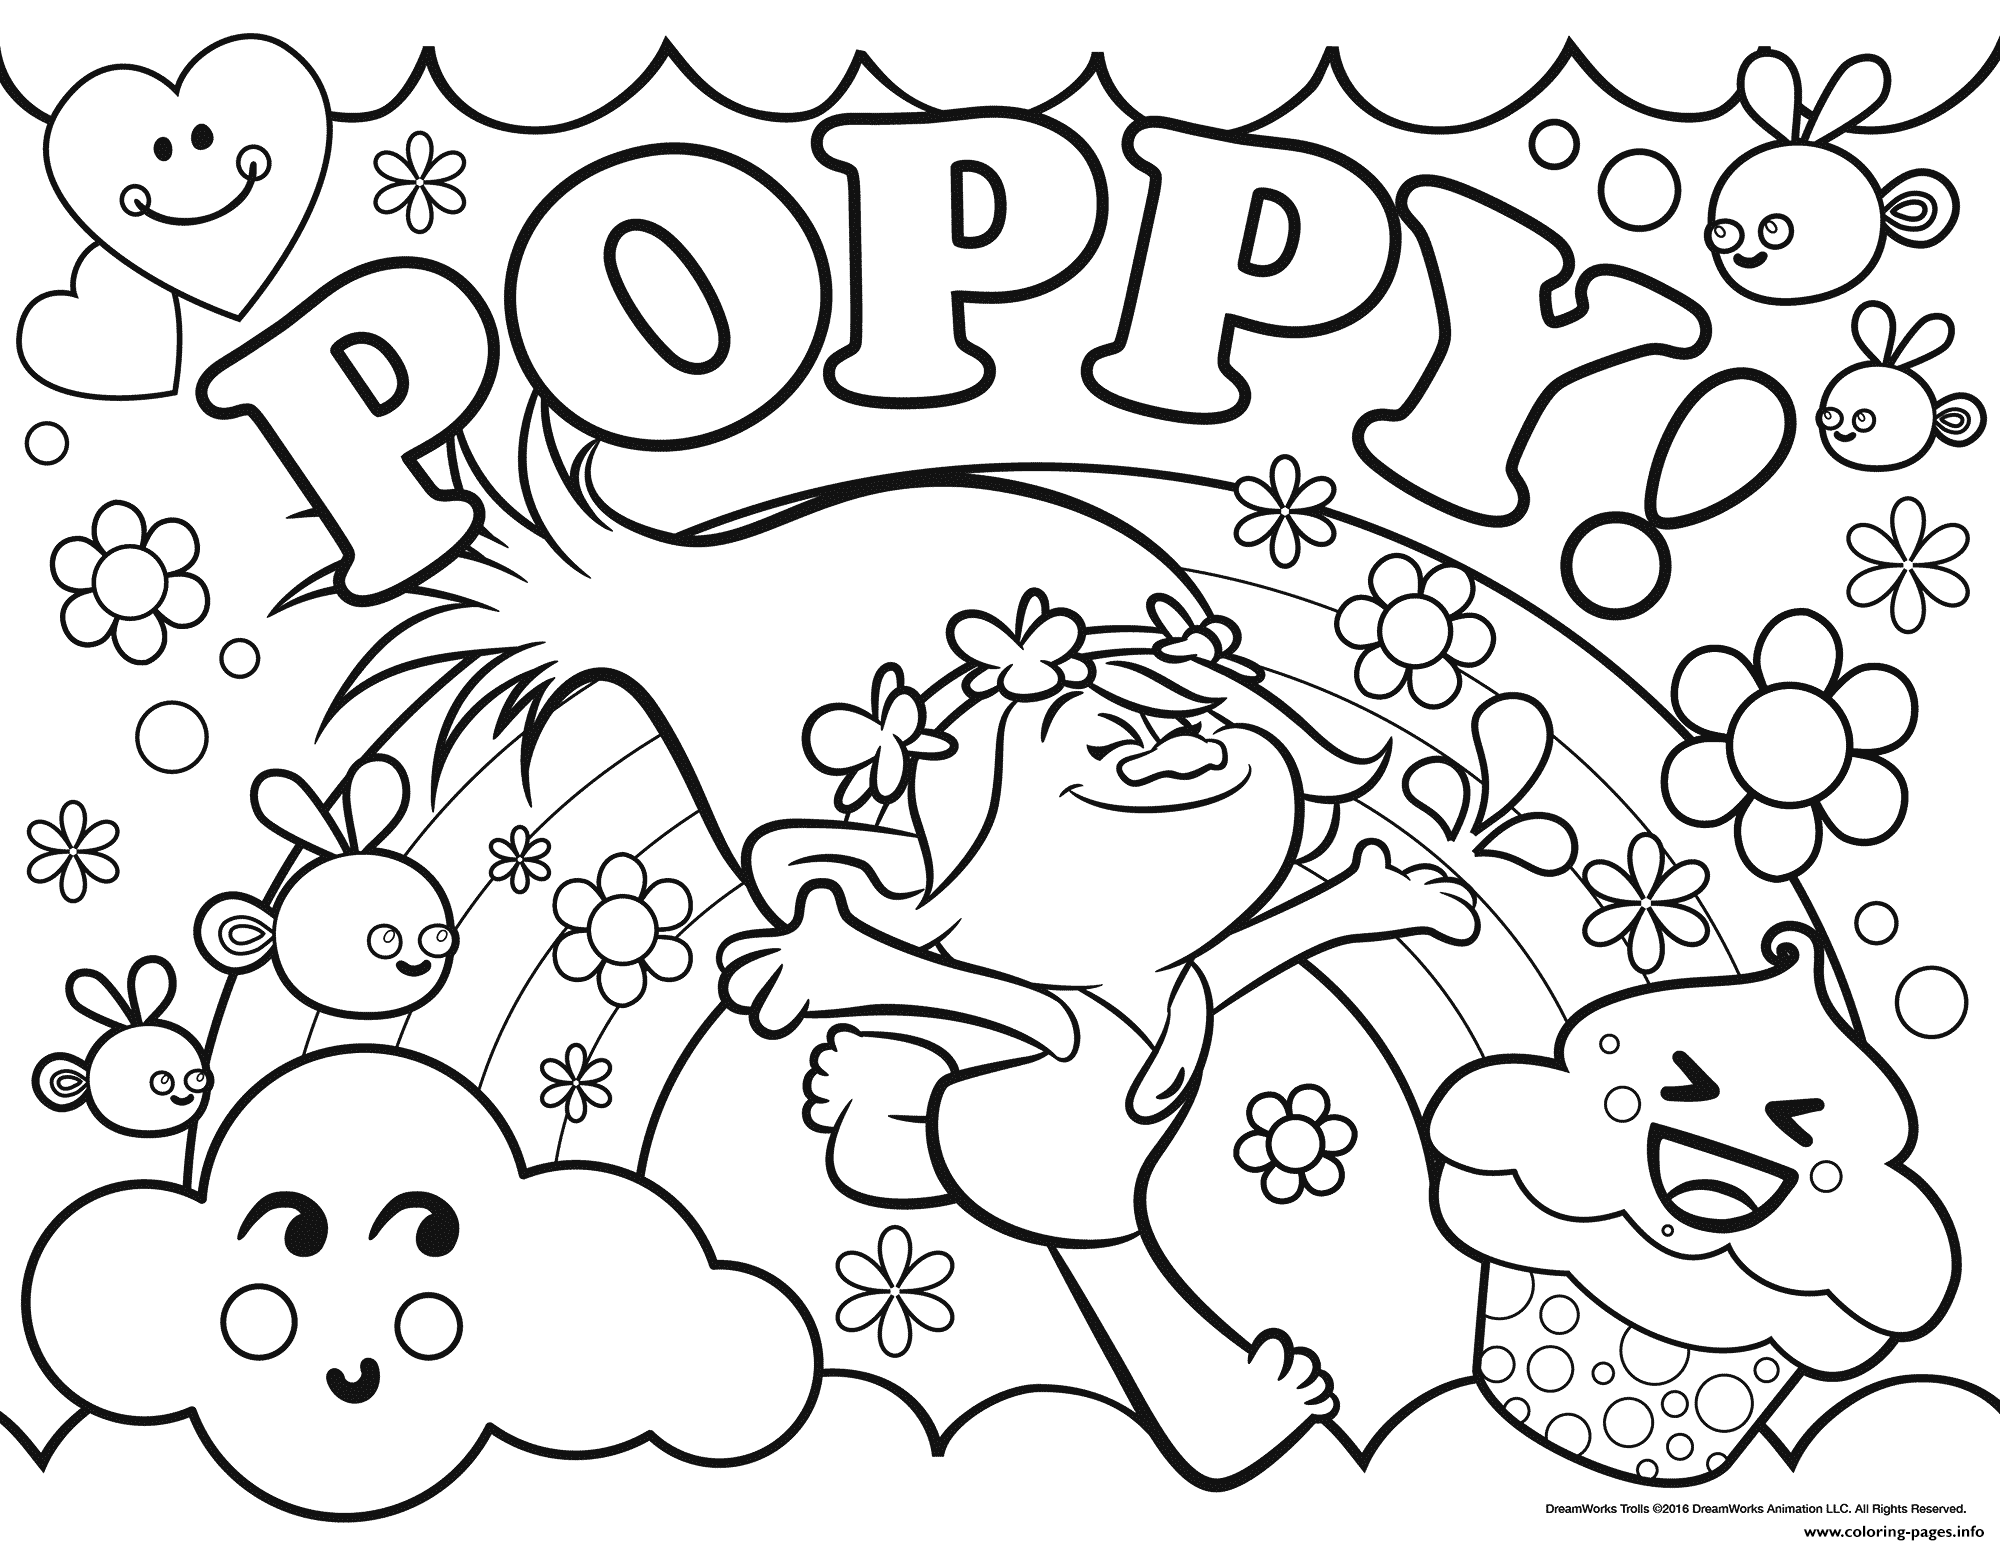 Print Trolls Poppy Coloring Pages Poppy Coloring Page